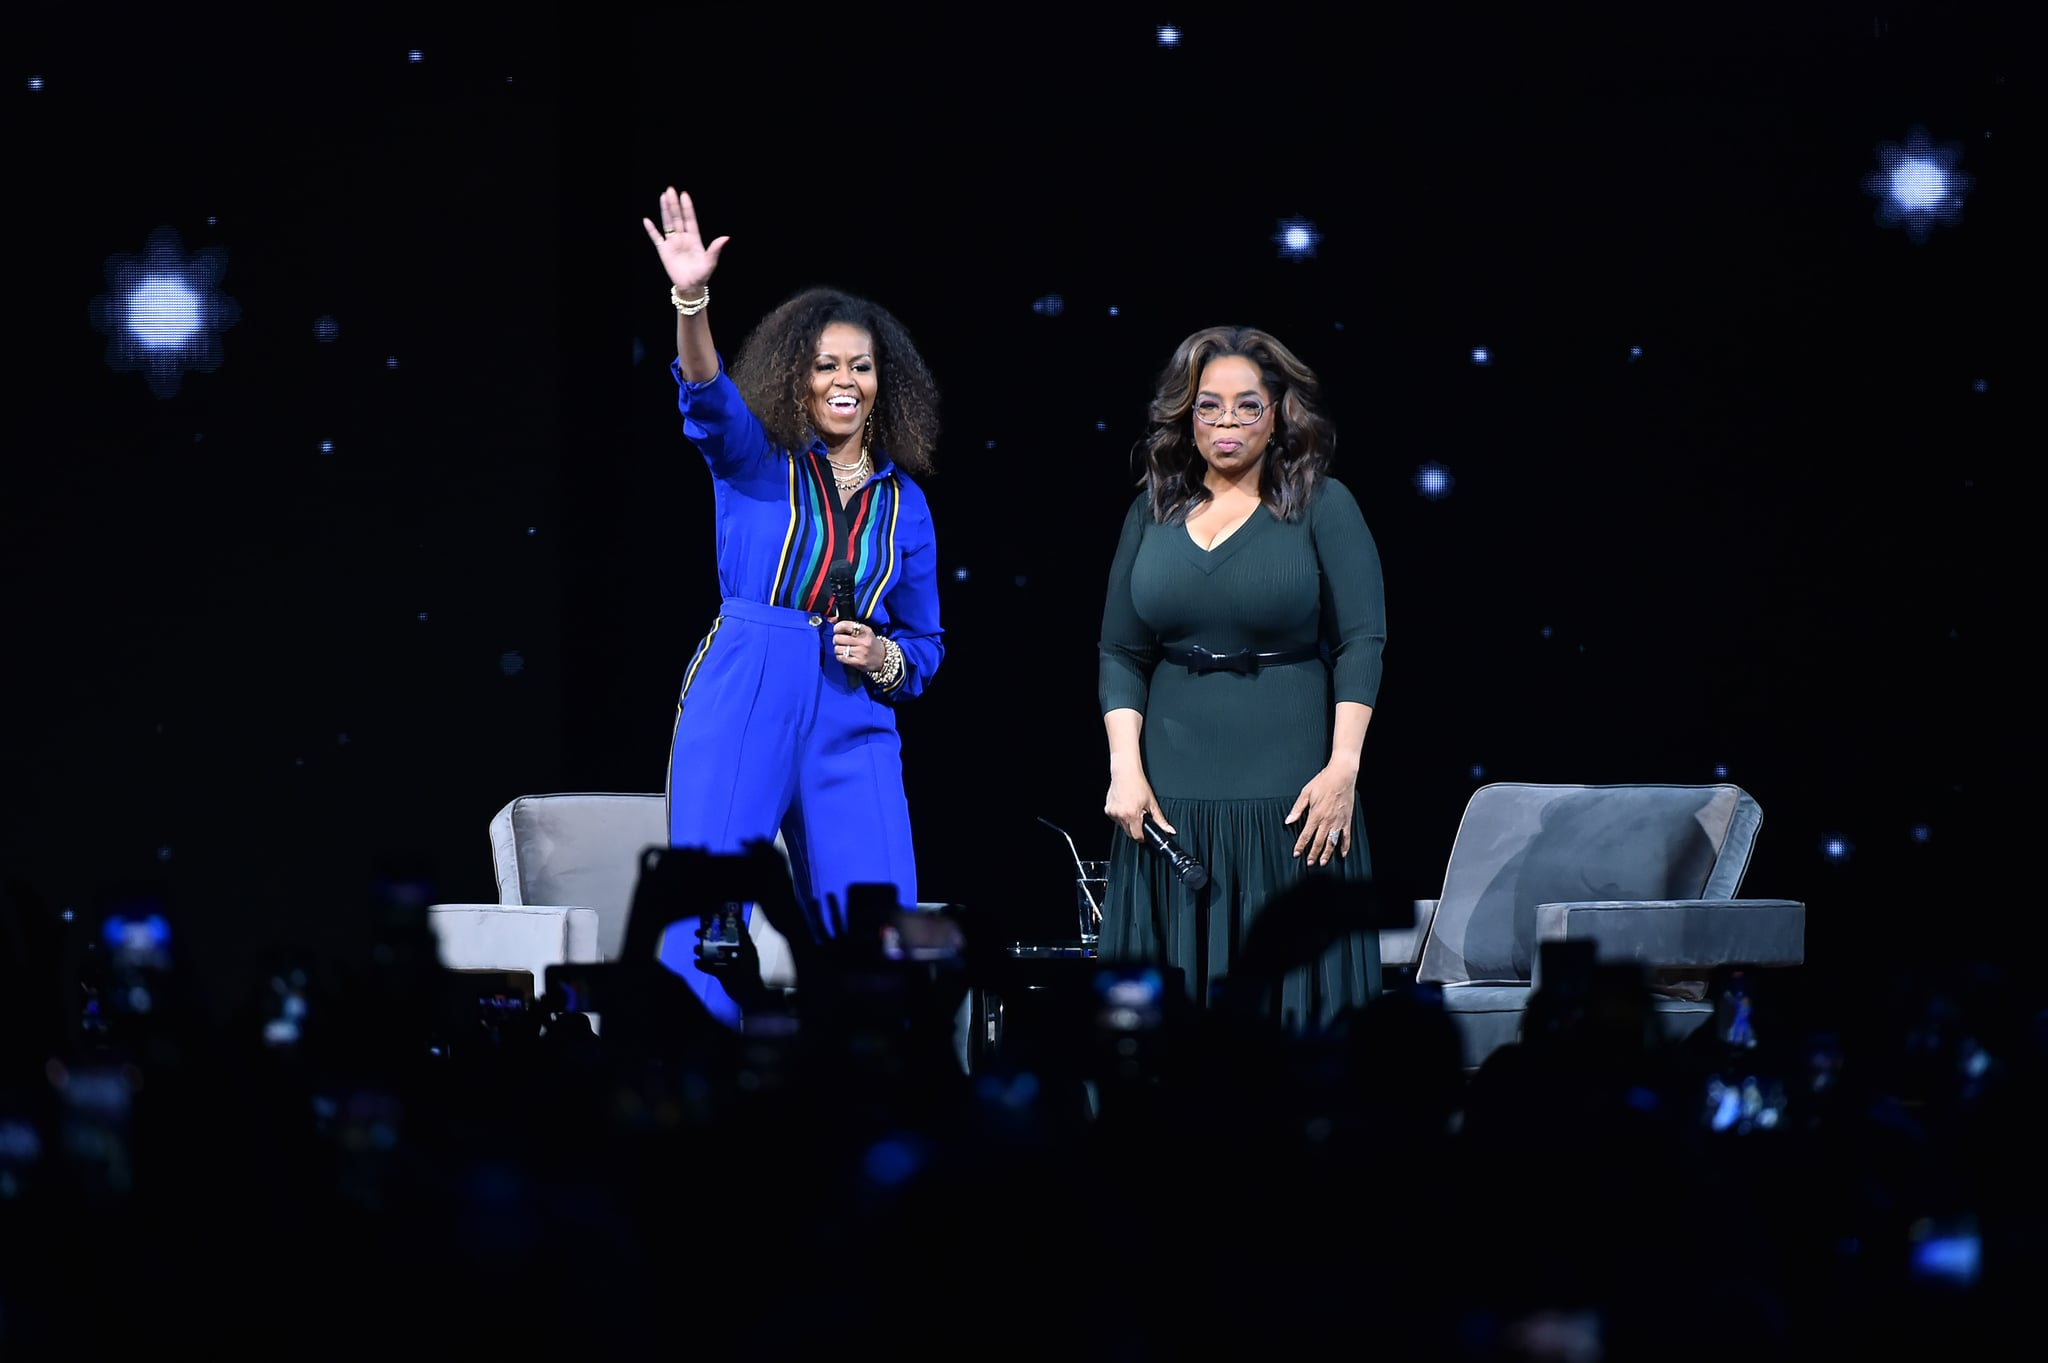 NEW YORK, NEW YORK - FEBRUARY 08: Michelle Obama and Oprah Winfrey during Oprah's 2020 Vision: Your Life in Focus Tour presented by WW (Weight Watchers Reimagined) at Barclays Centre on February 08, 2020 in New York, New York. (Photo by Theo Wargo/Getty Images)